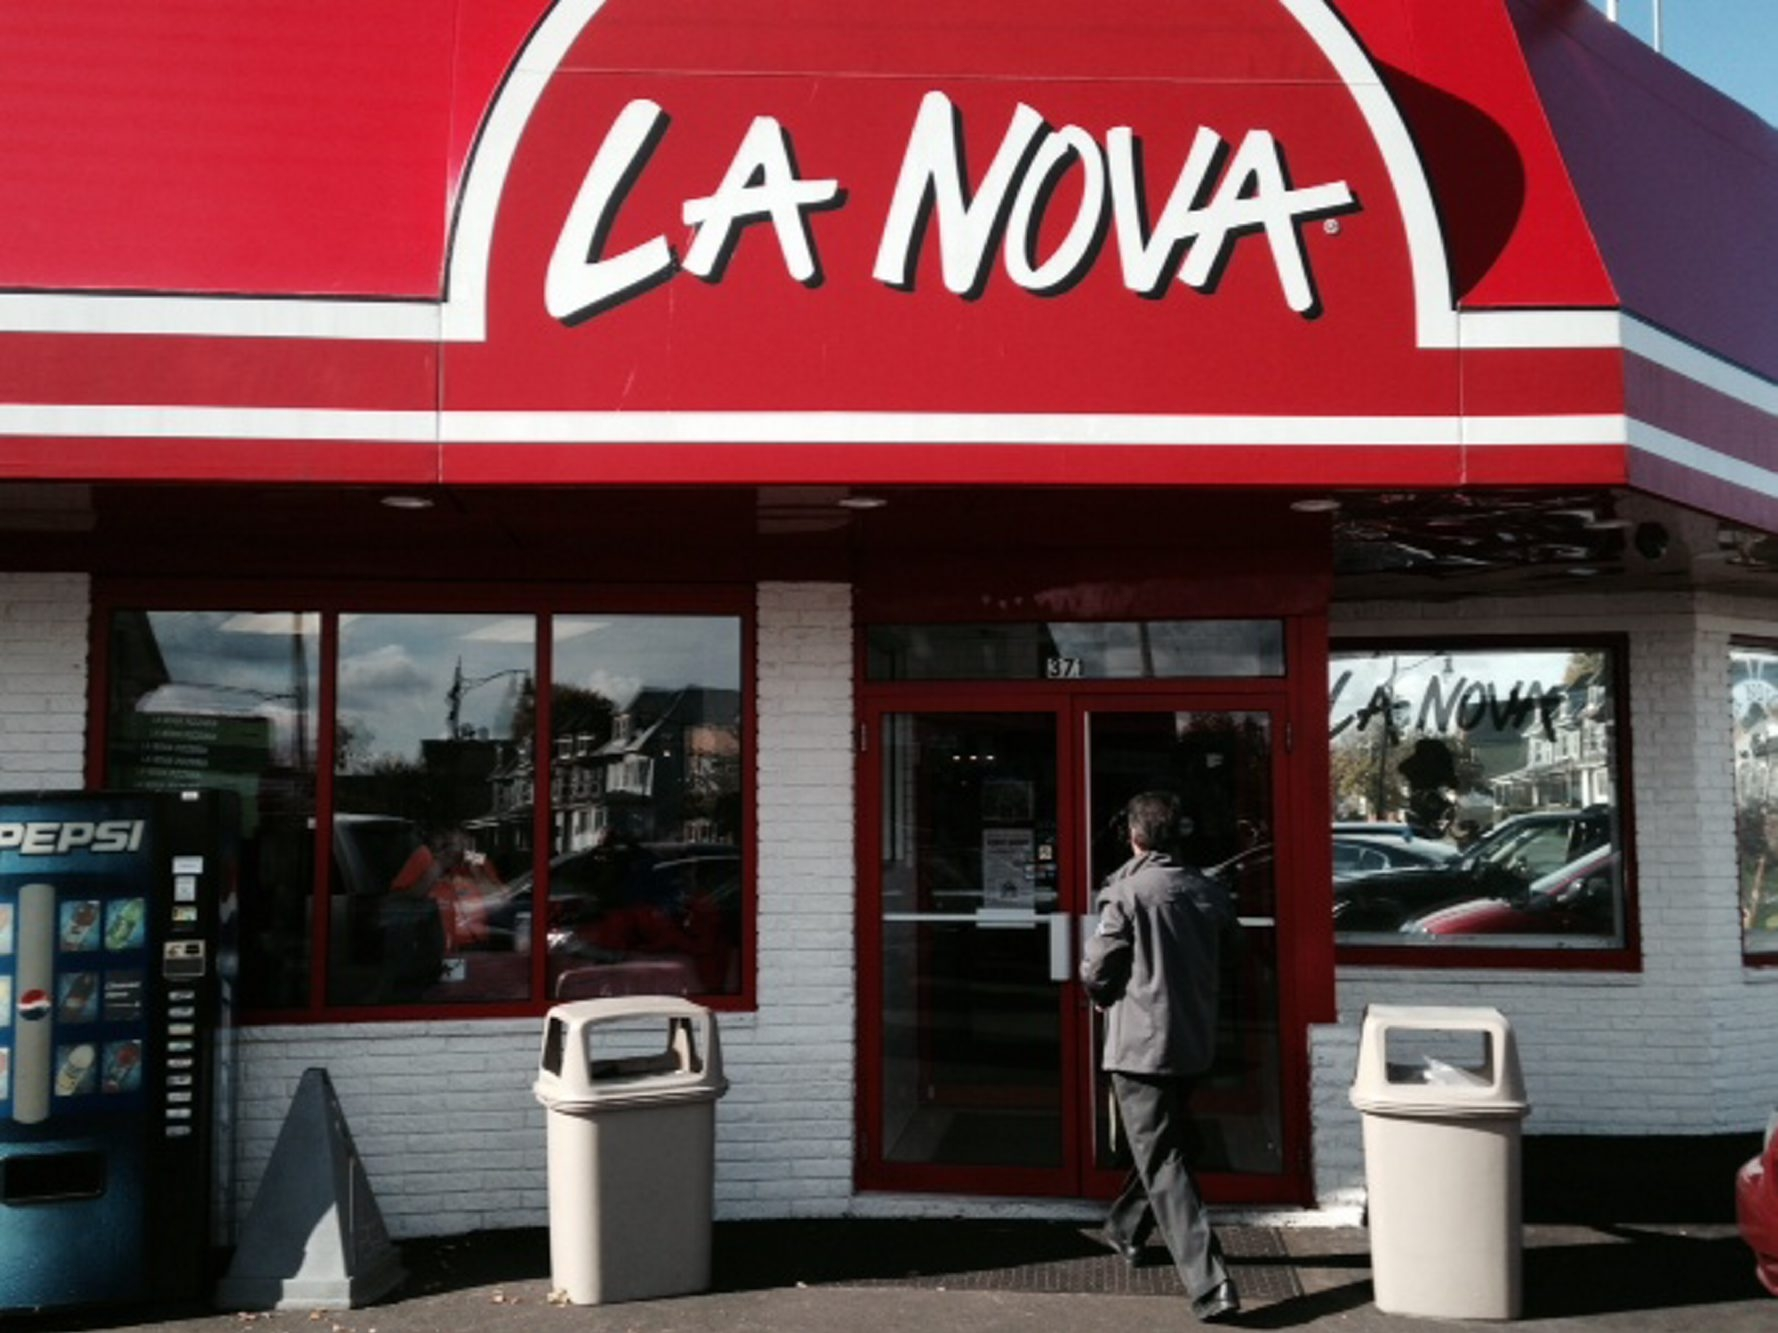 La Nova on West Ferry where a gunman held up two employees leaving the restaurant with a bank deposit bag.